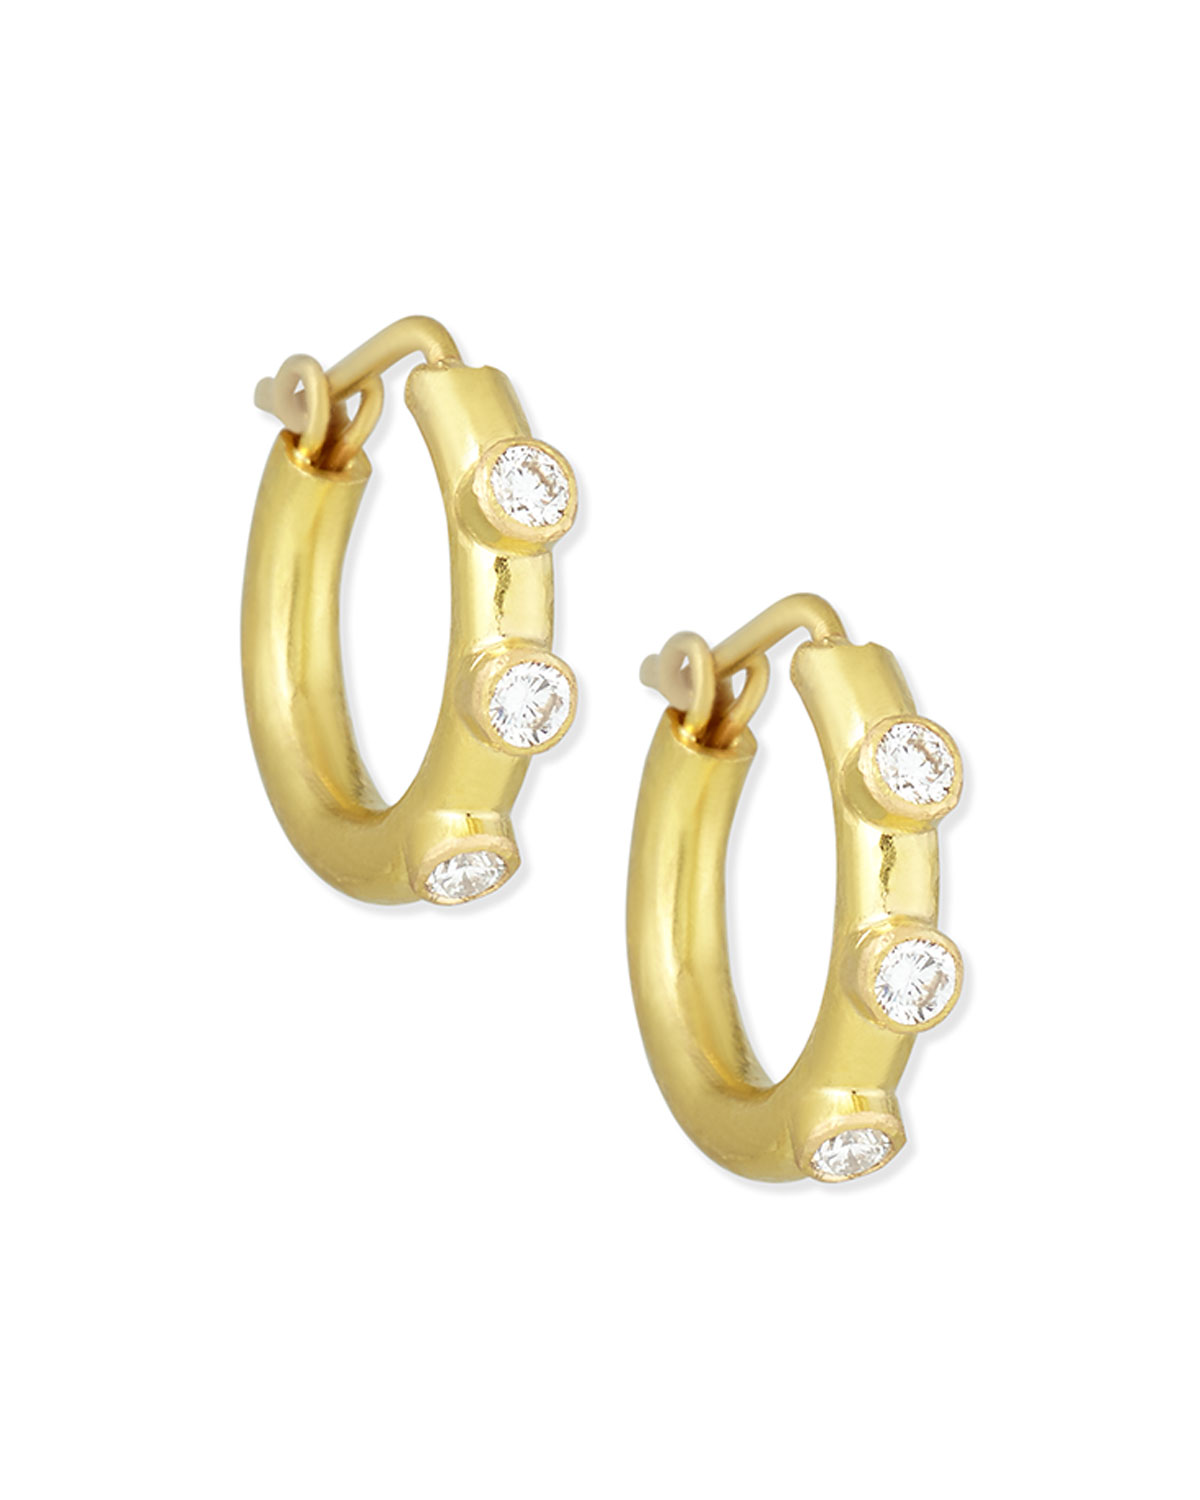 19k Baby Diamond Hoop Earrings